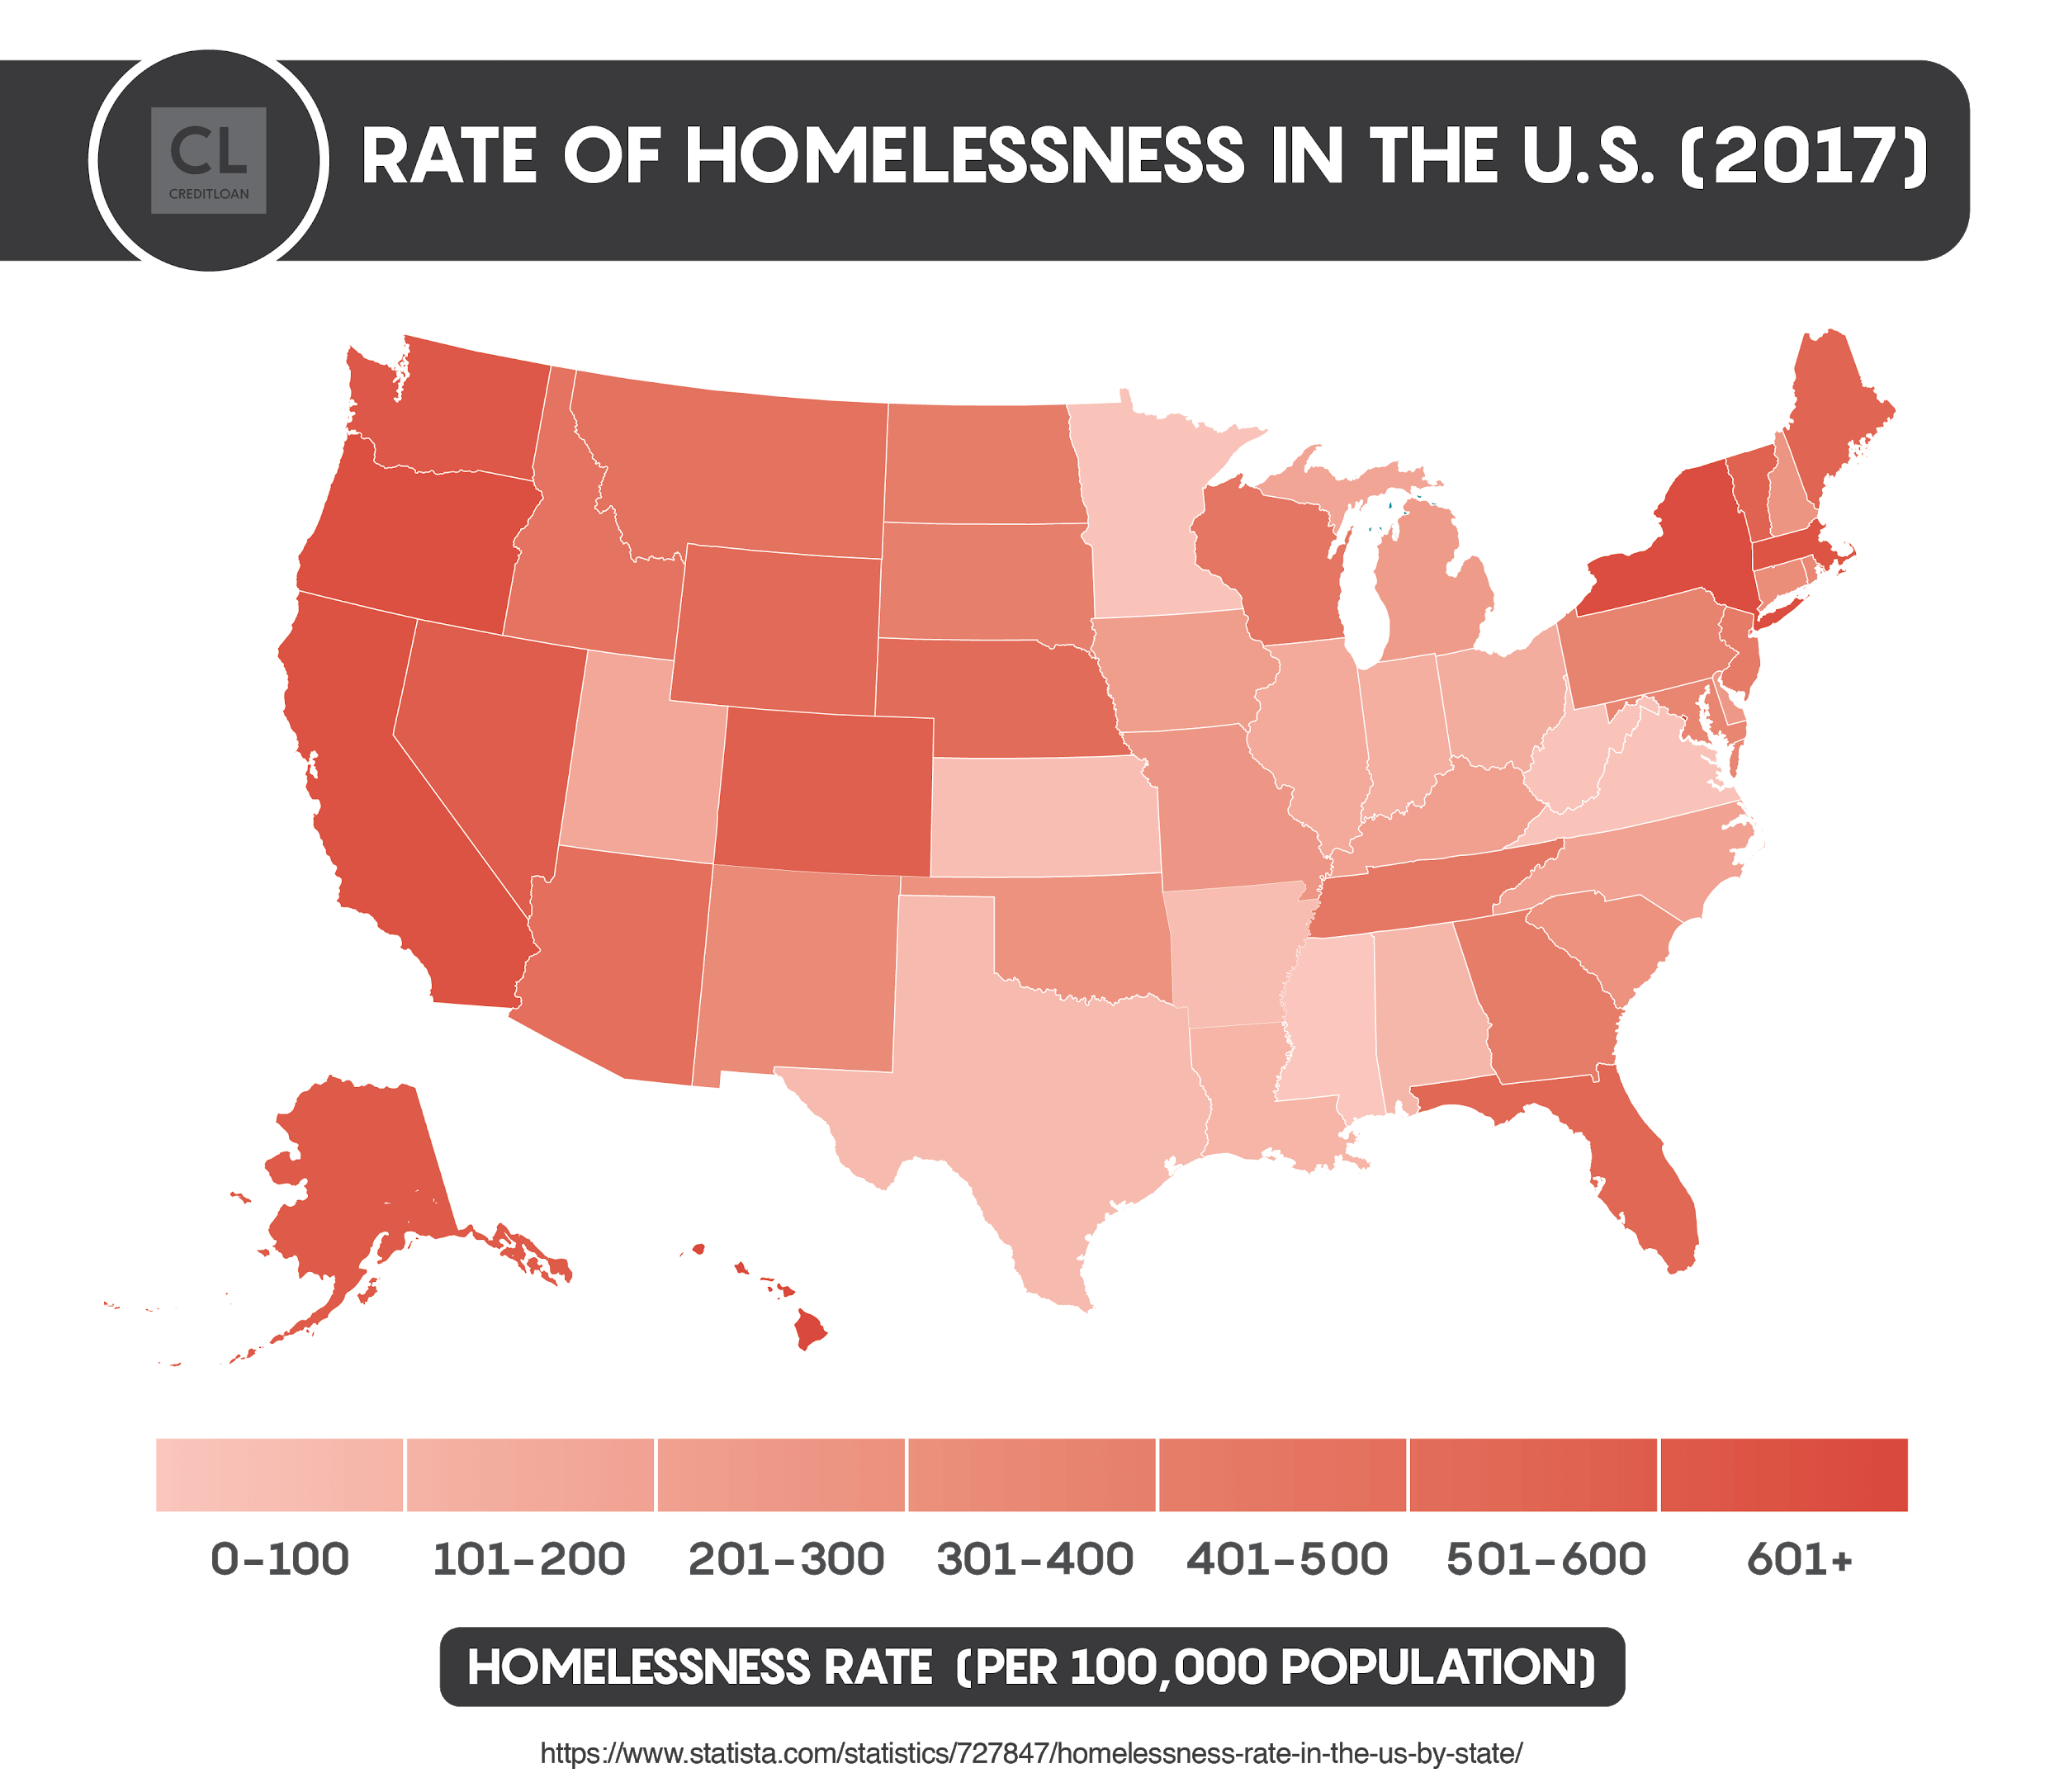 2017 Rate of Homelessness in the U.S.